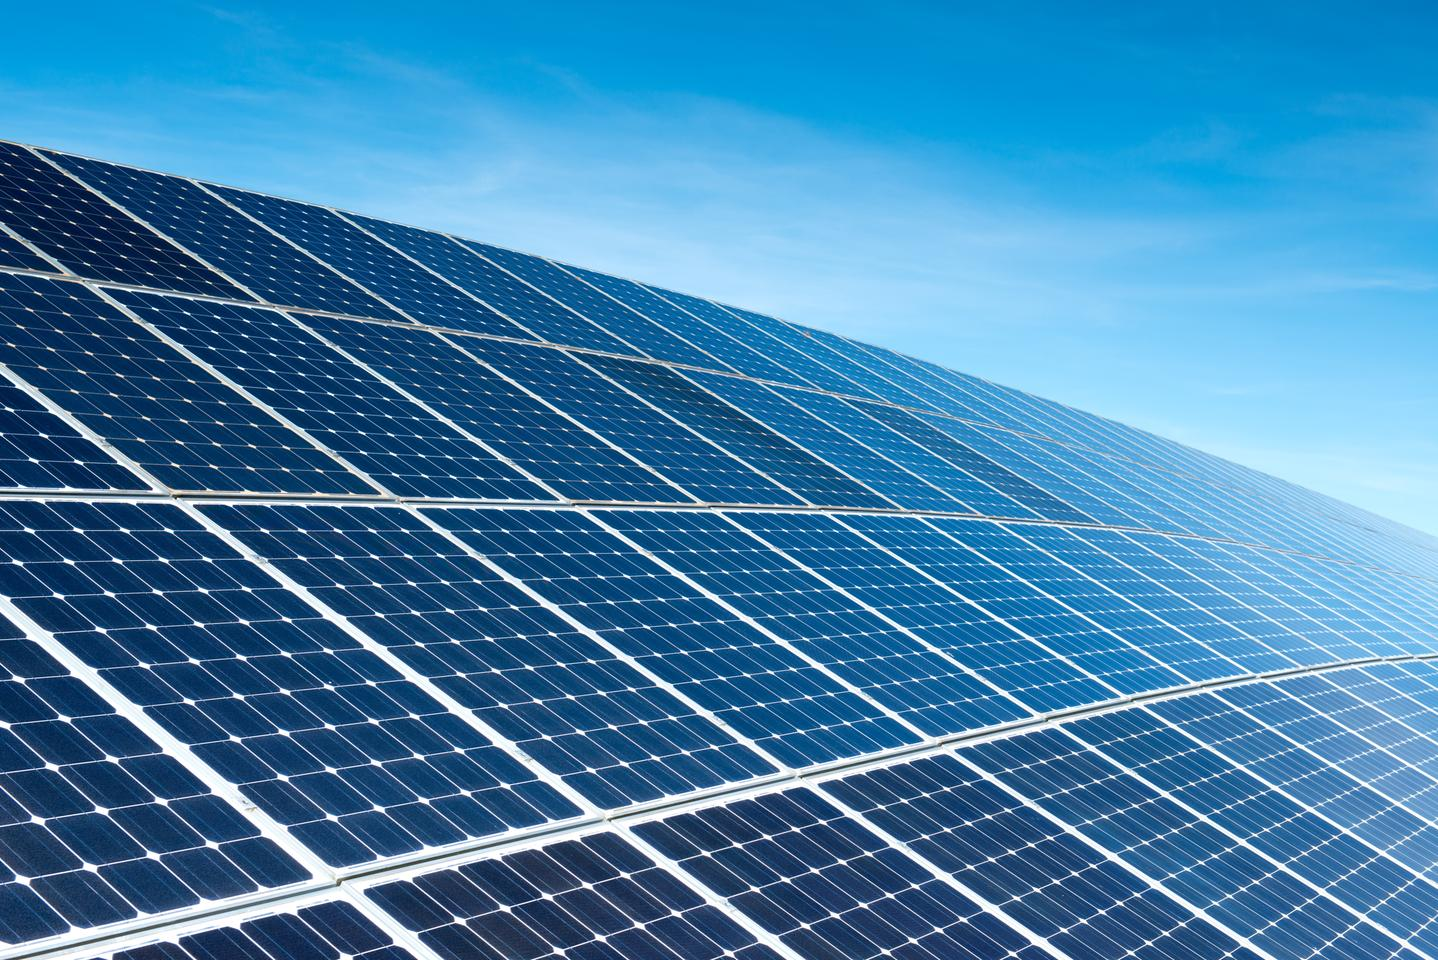 For one hour in October, the entire state of South Australia drew its energy purely from solar